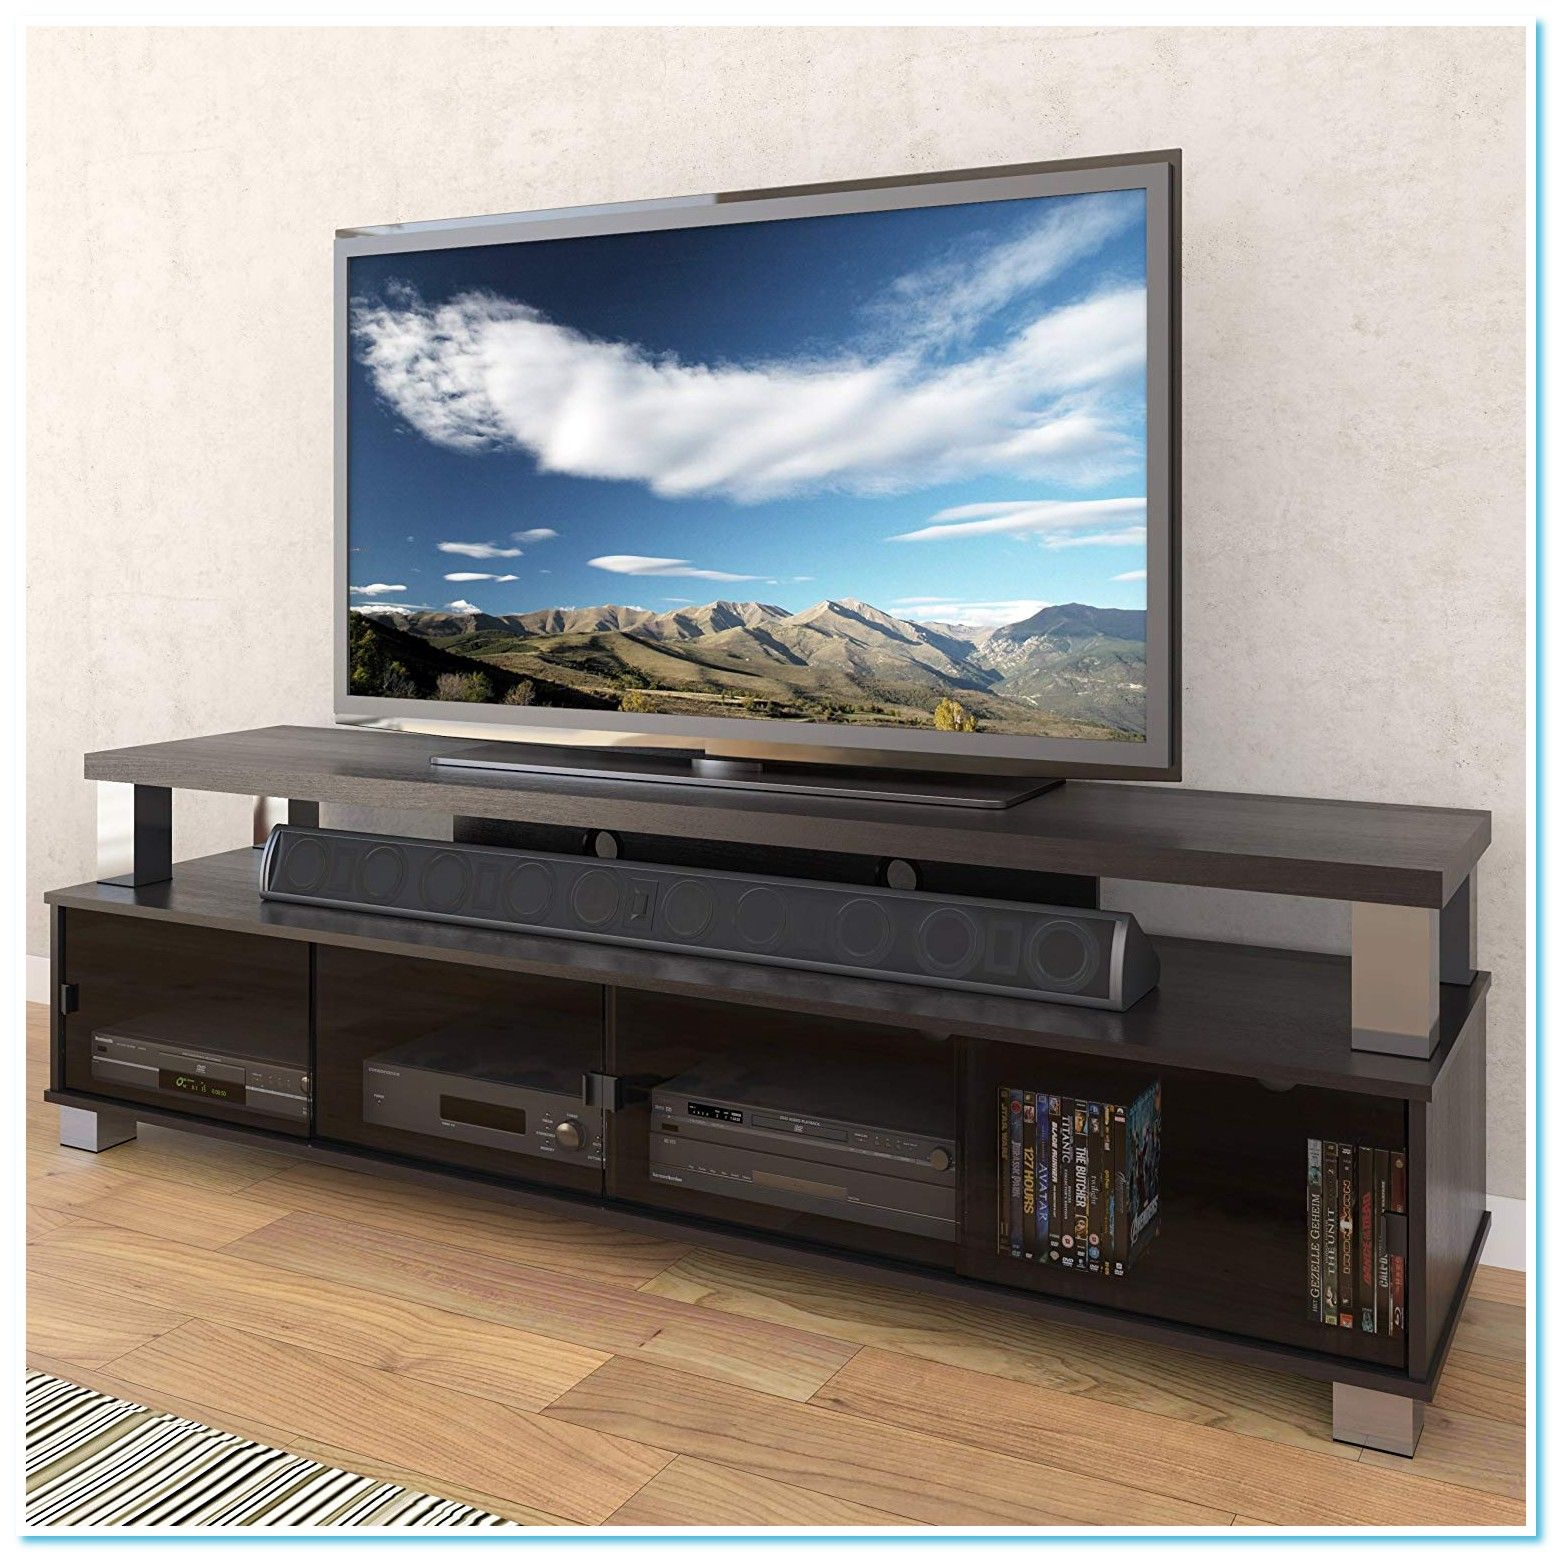 41 Reference Of Tv Stand Black 75 Inch Tv Stand Black Wood Black Tv Stand Flat Screen Tv Stand